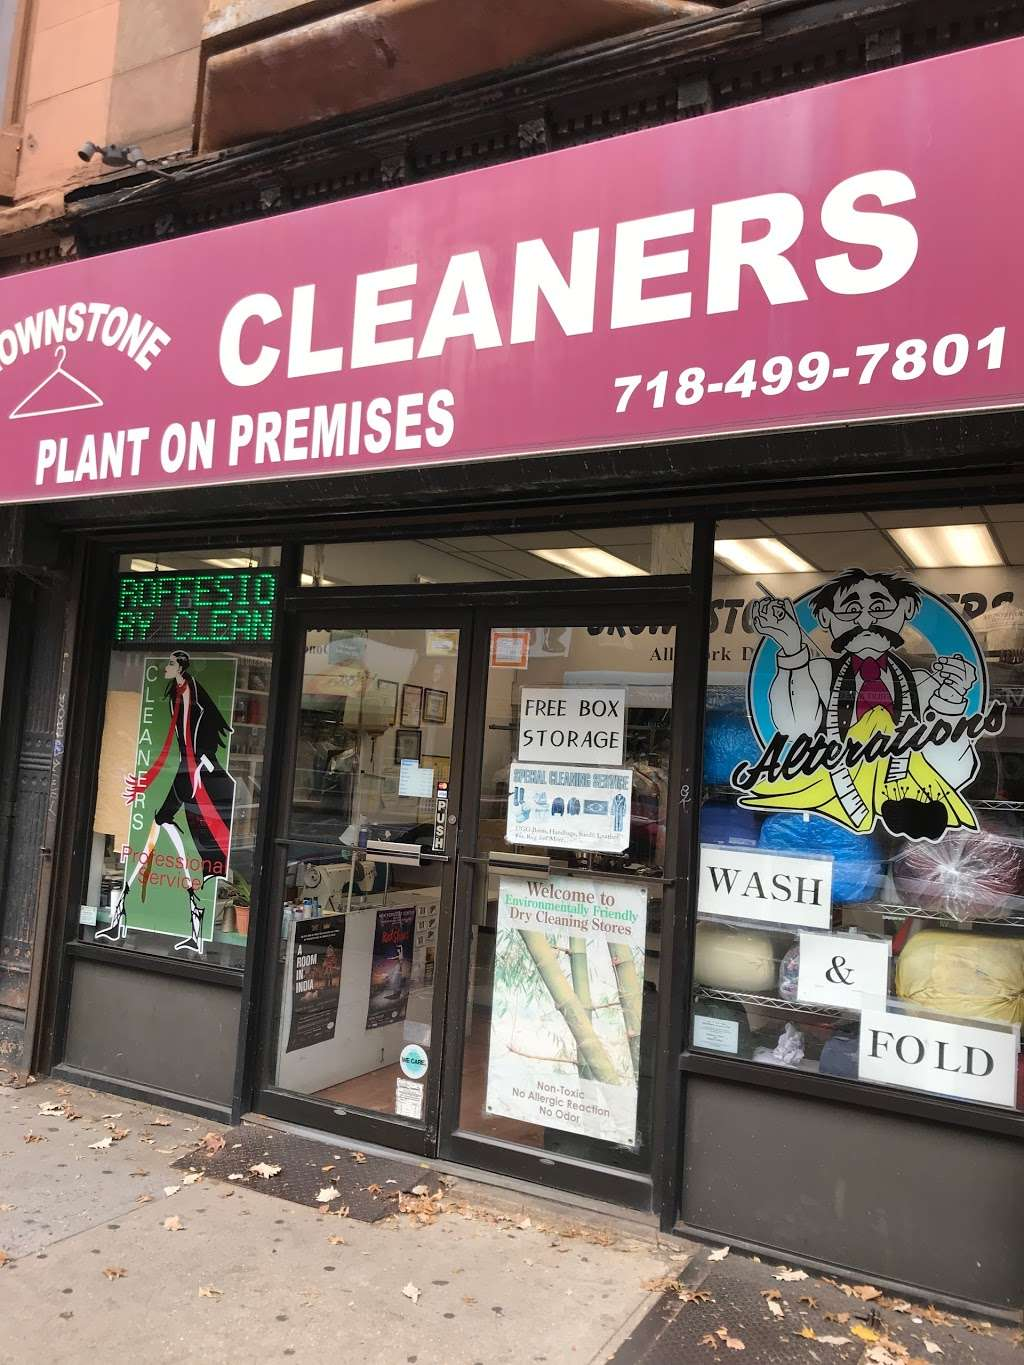 Brown Stone Cleaners - laundry  | Photo 2 of 3 | Address: 318 7th Ave, Brooklyn, NY 11215, USA | Phone: (718) 499-7801